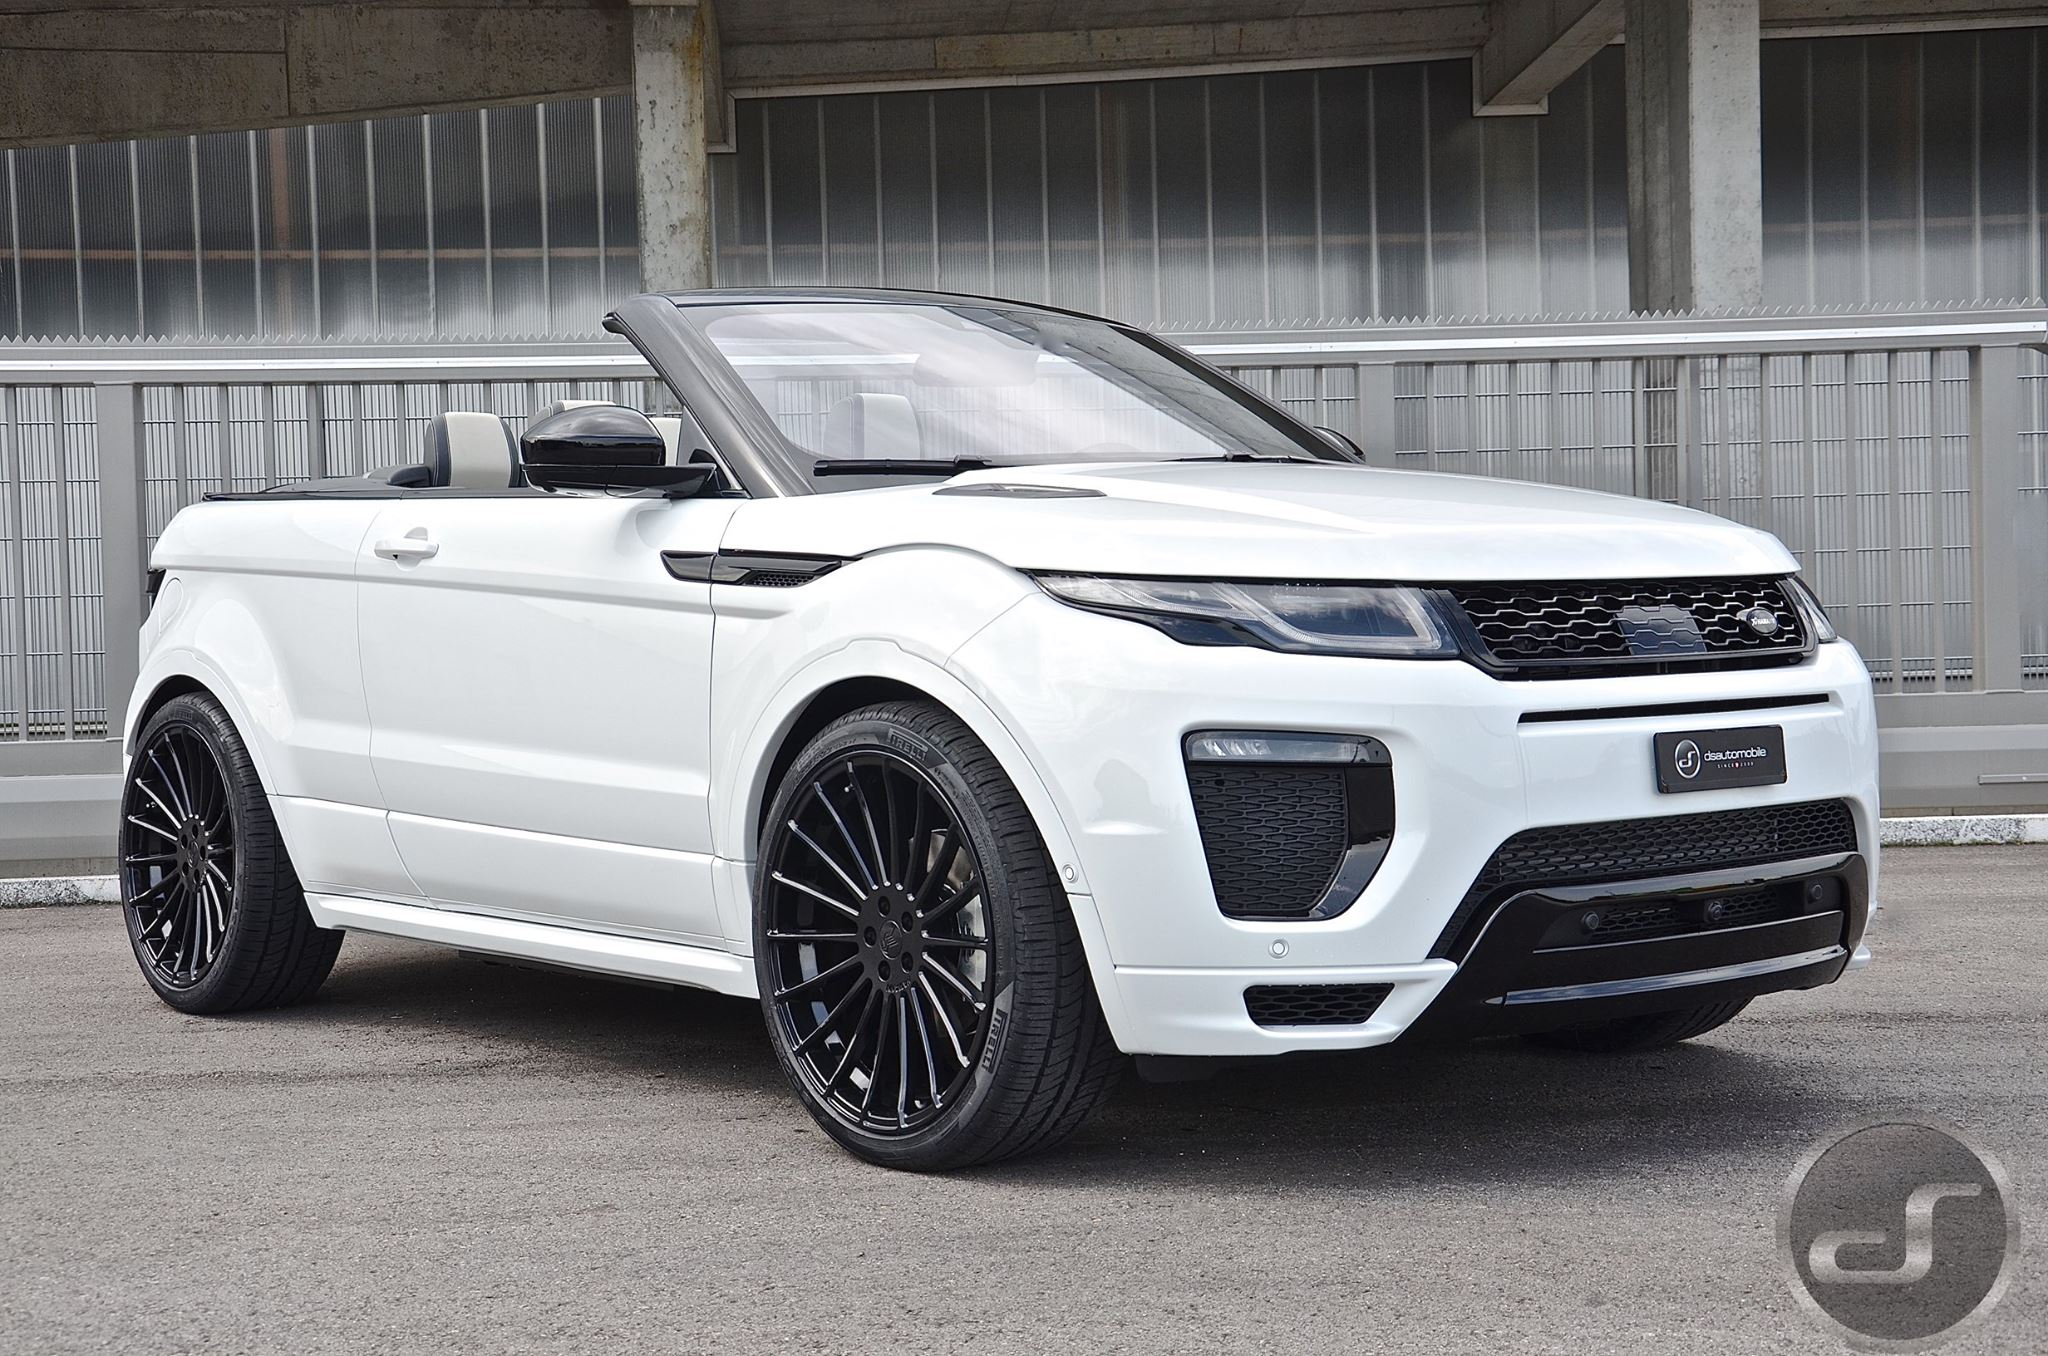 The First Tuned Range Rover Evoque Cabrio Wears Hamann Kit ...